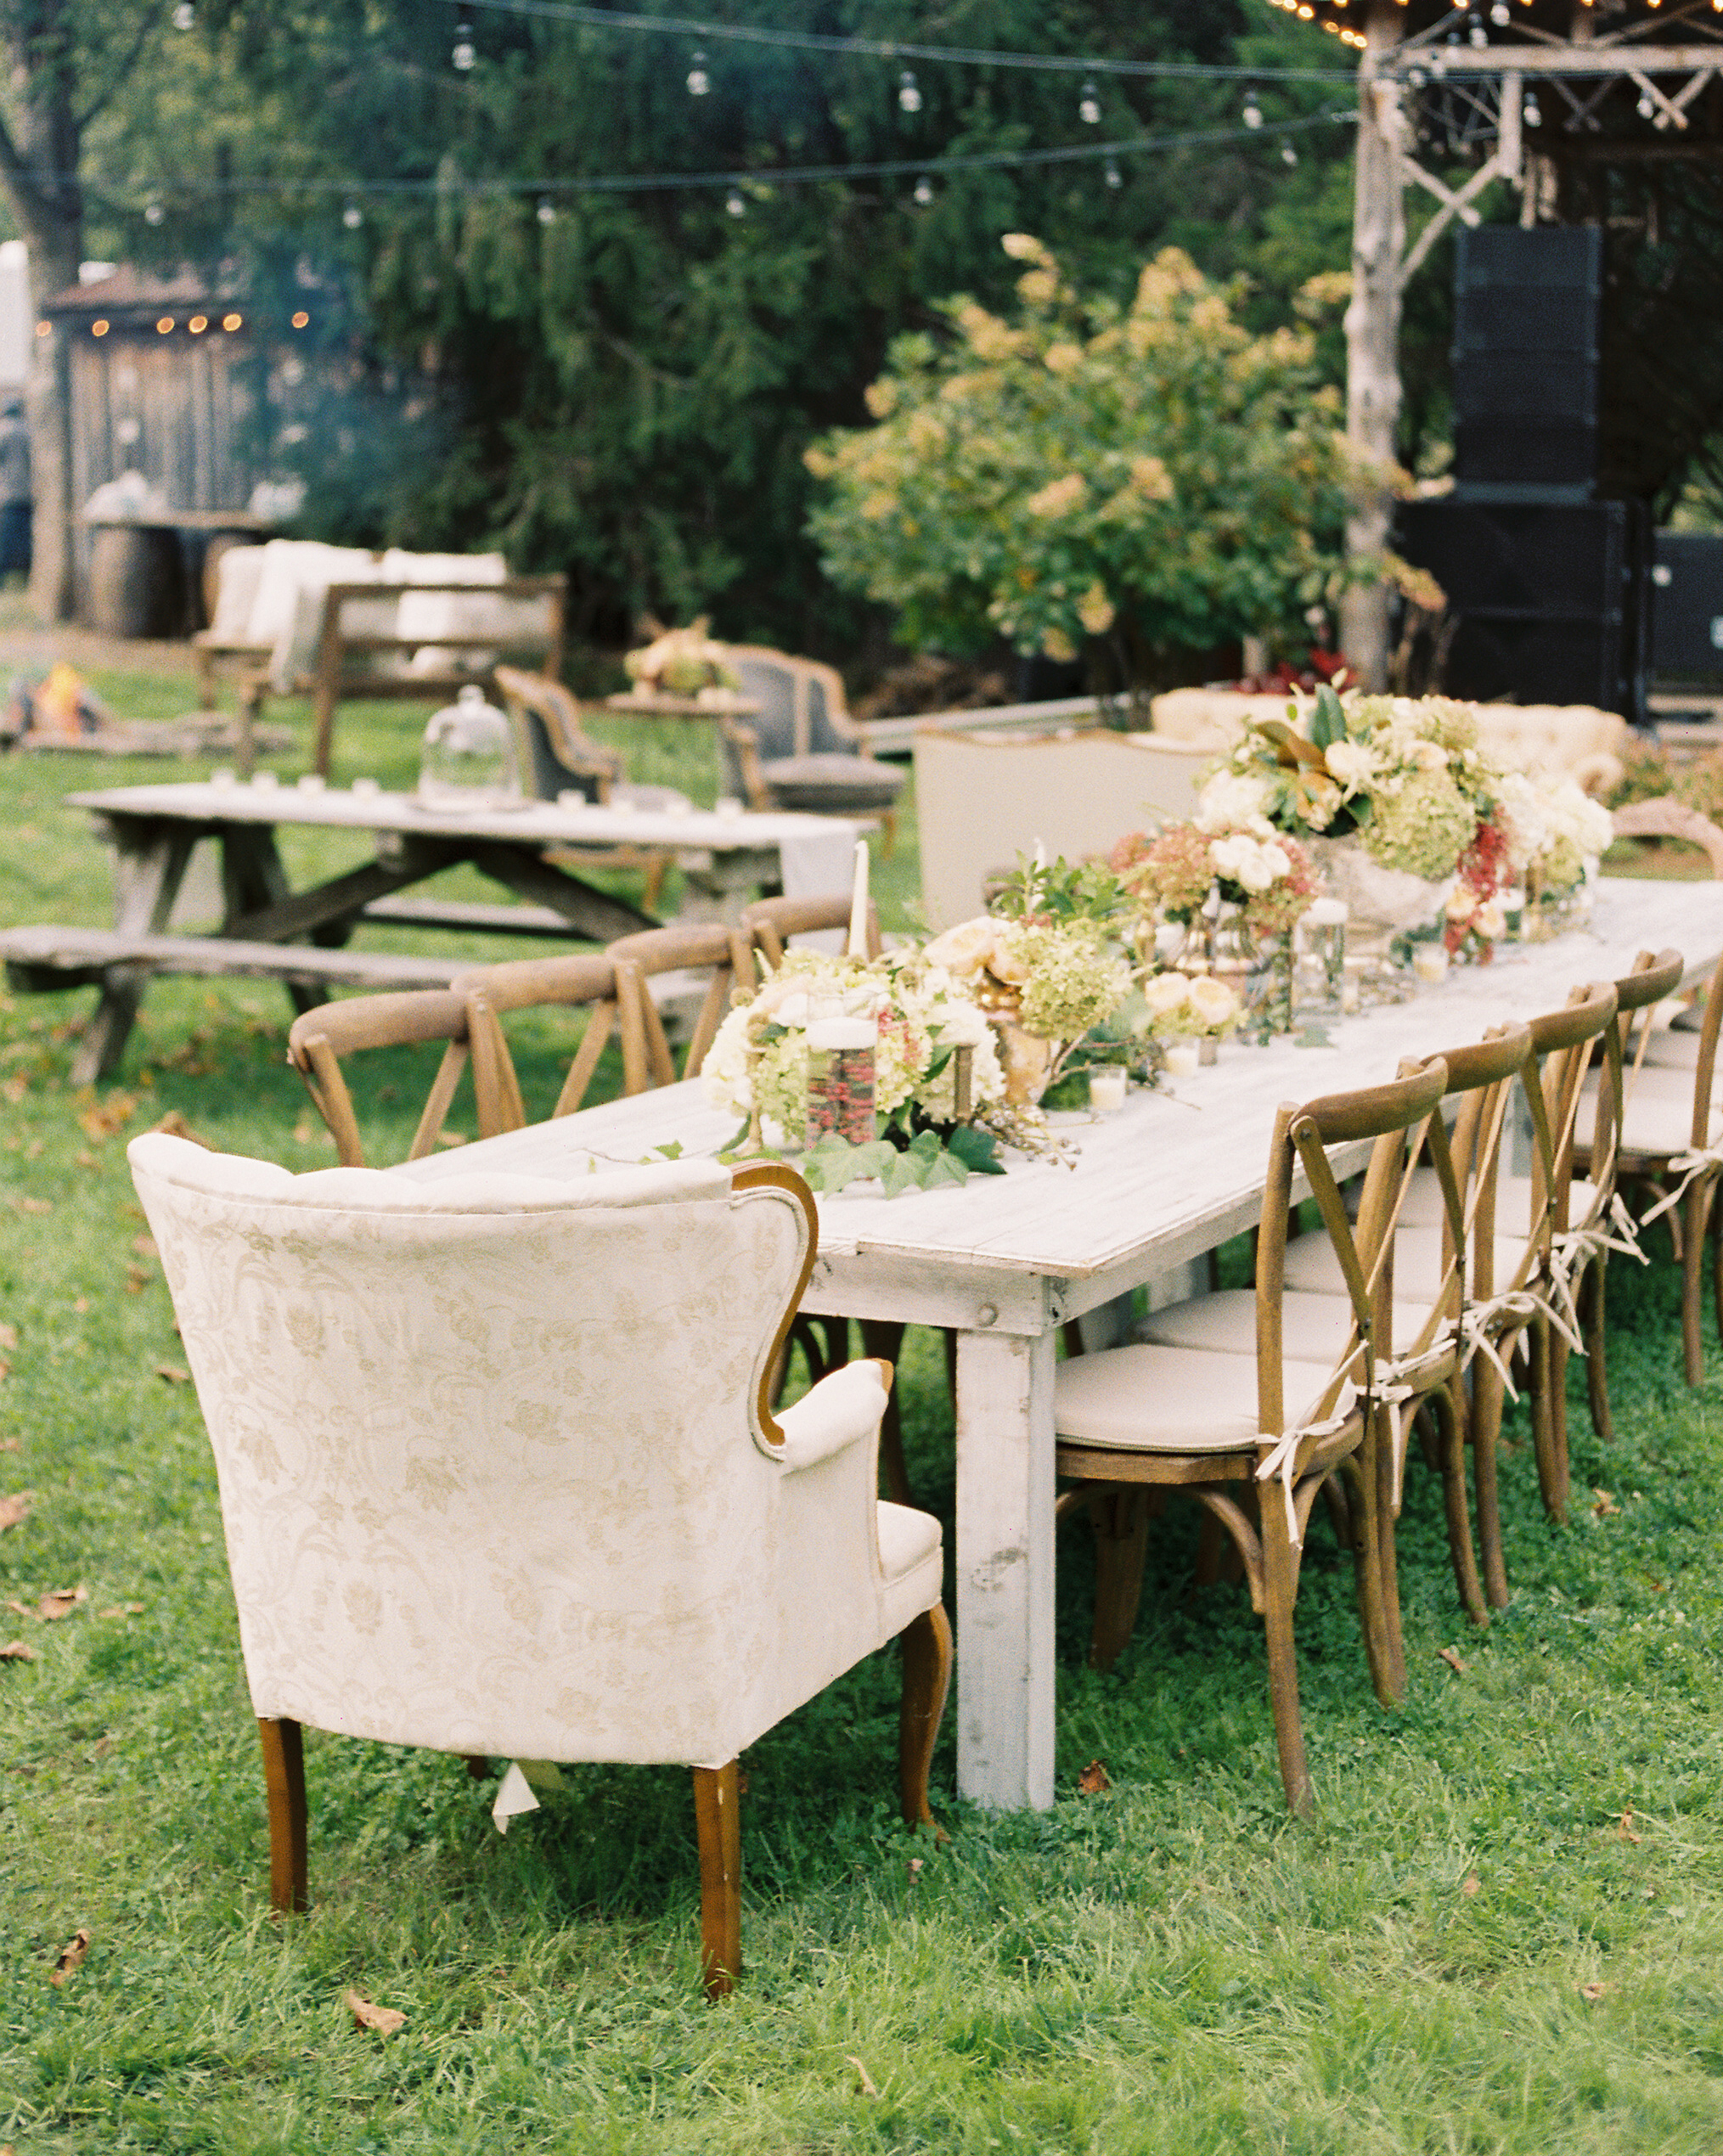 destiny-taylor-wedding-table-297-s112347-1115.jpg